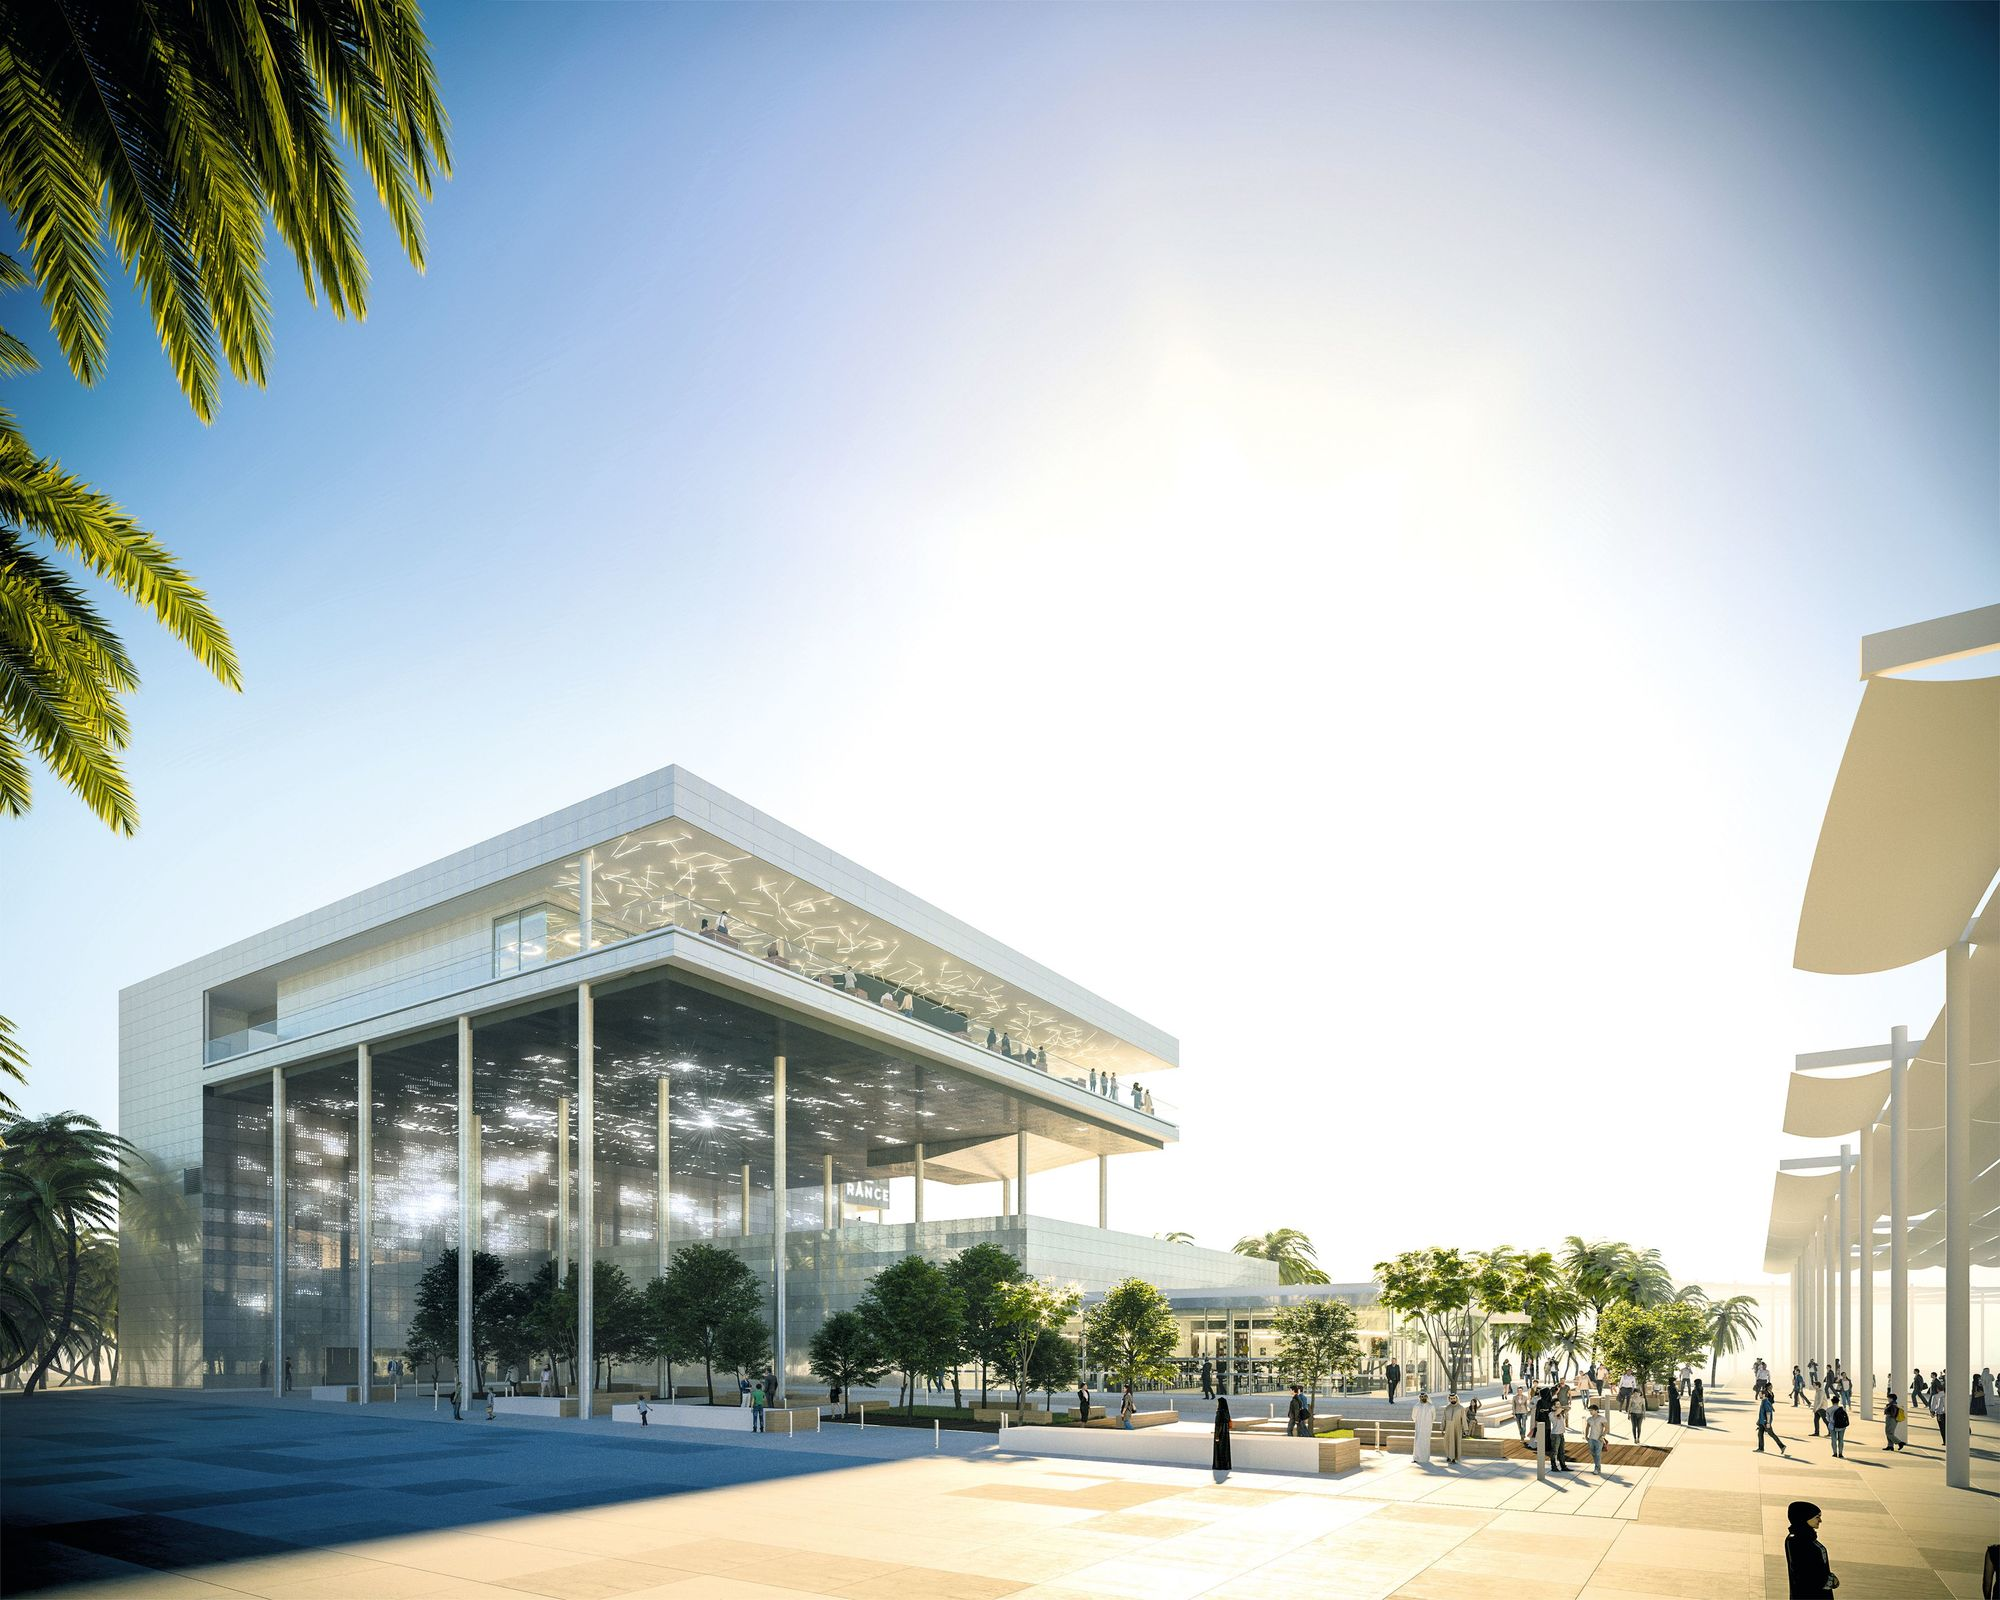 Pavillon France Dubaï 2020